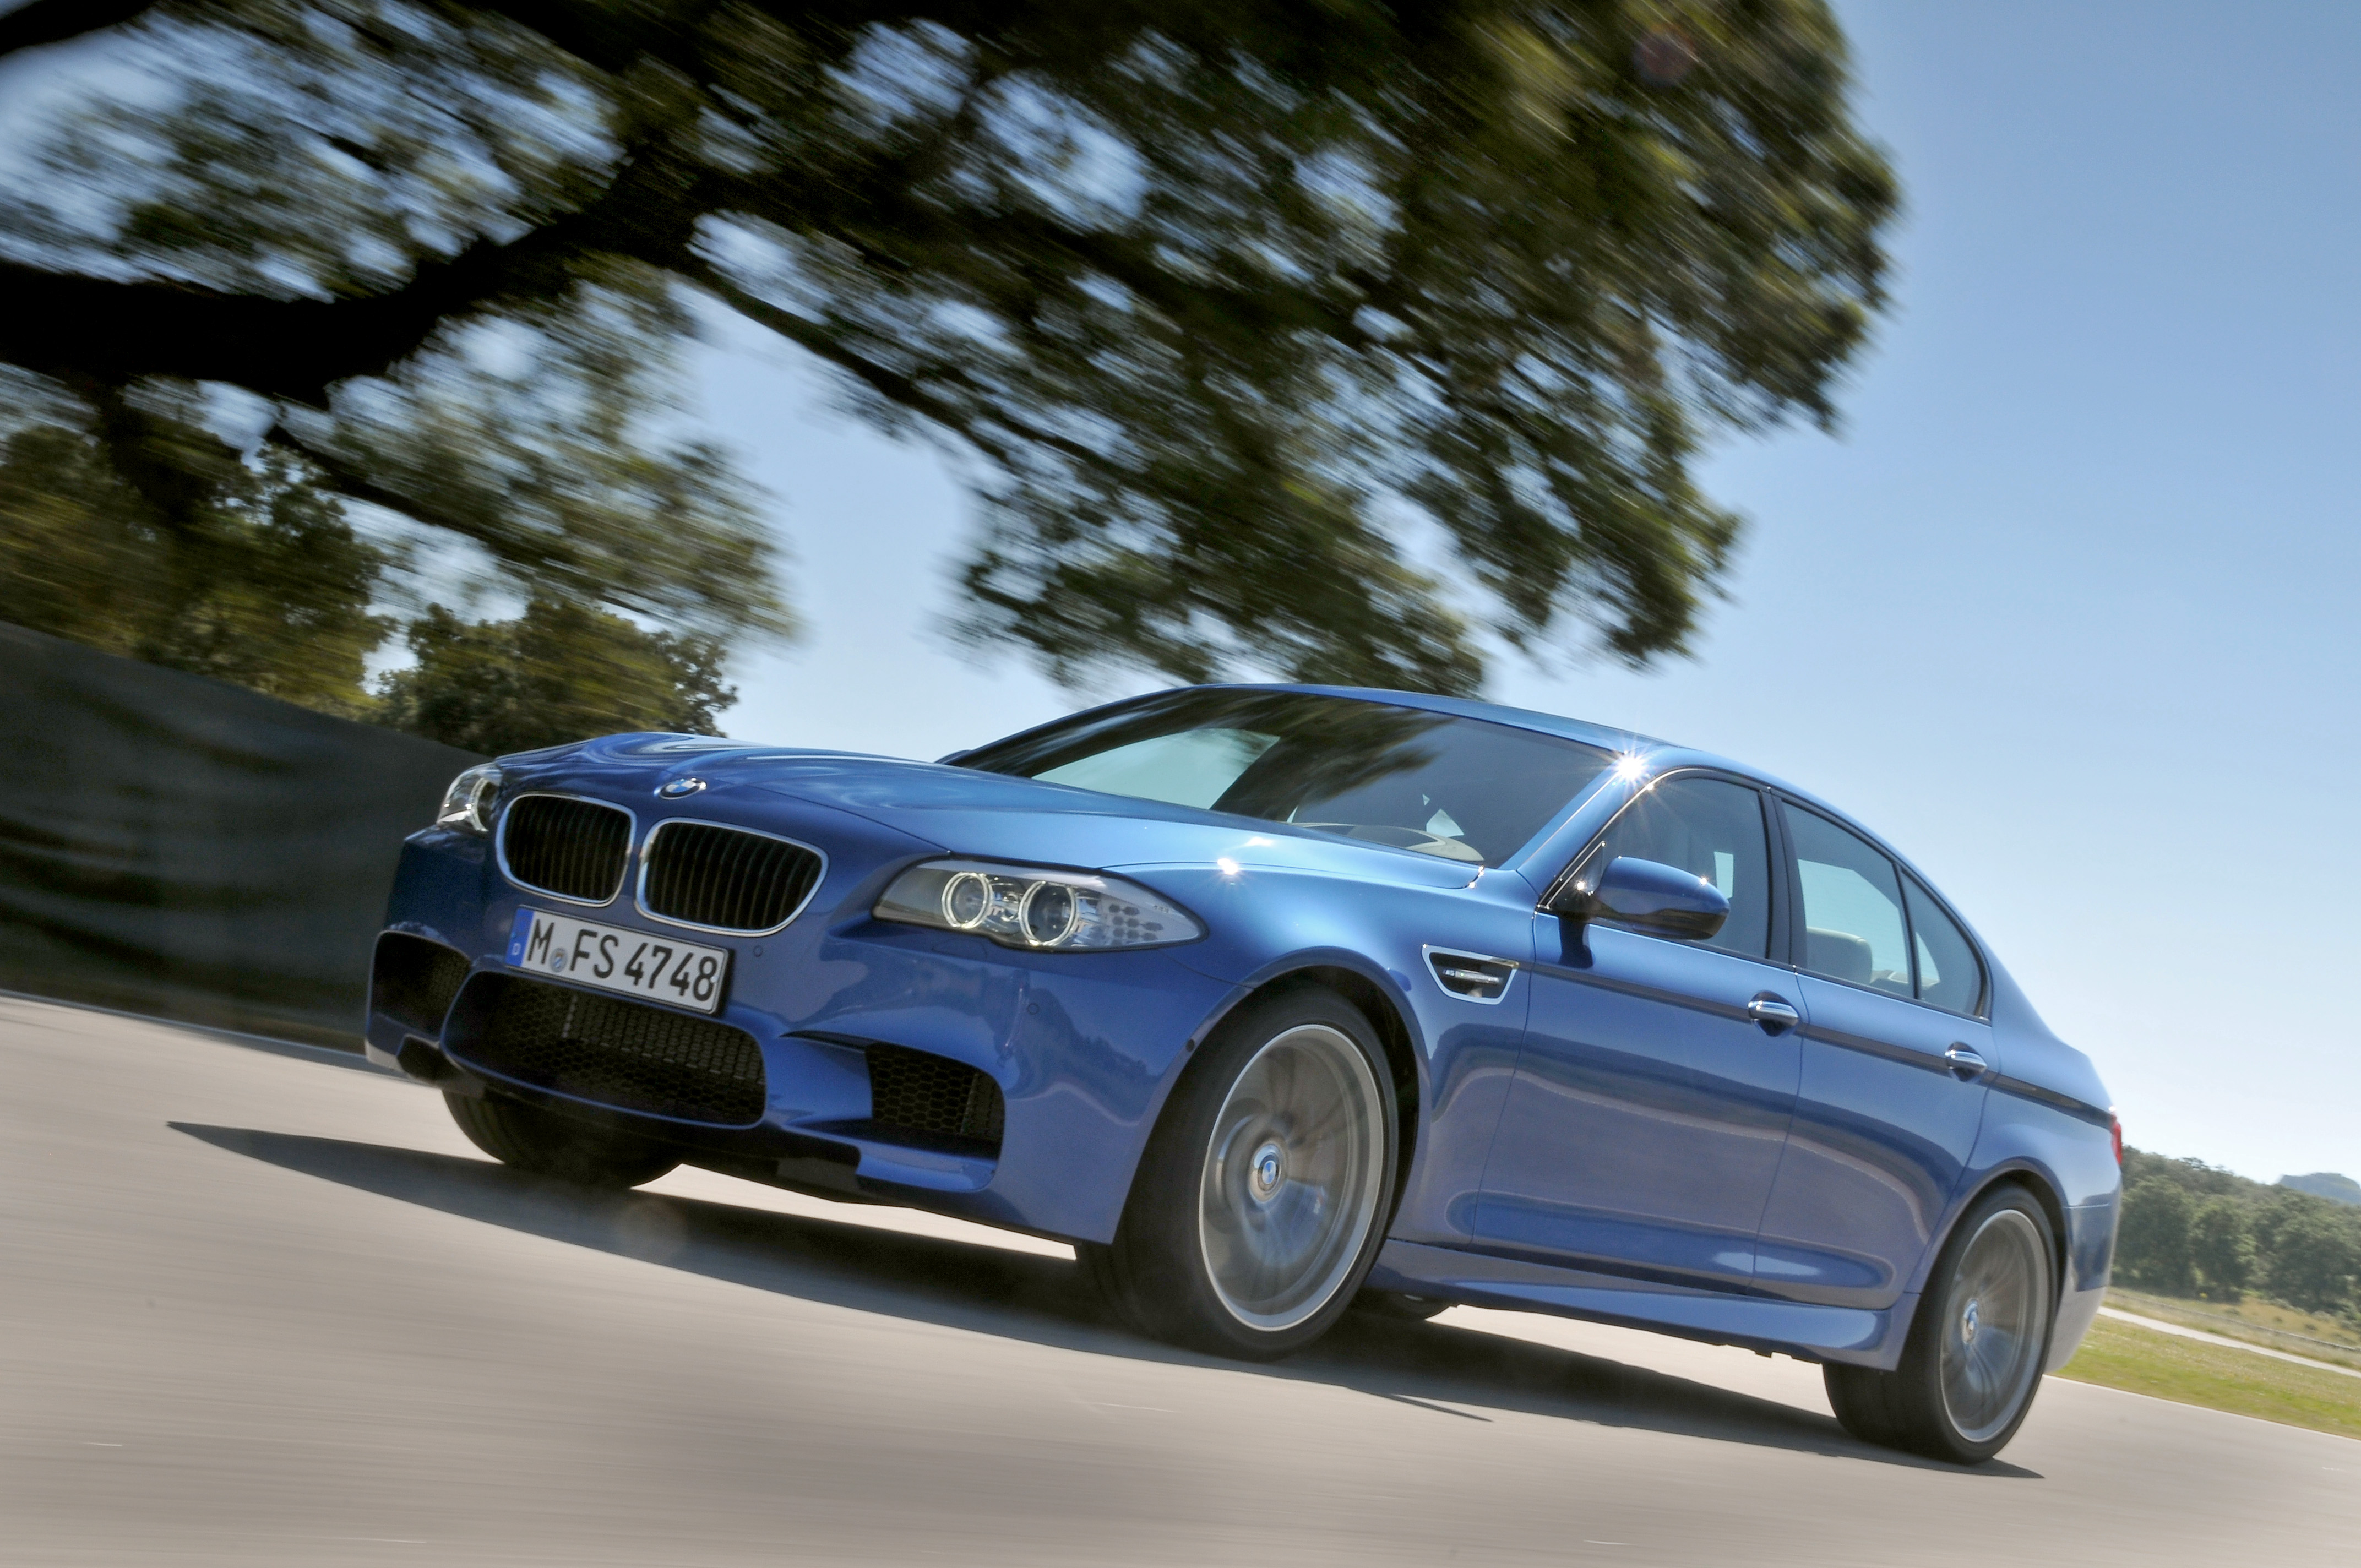 OFFICIAL BMW M5 Production pics high resolution!-p90078305.jpg